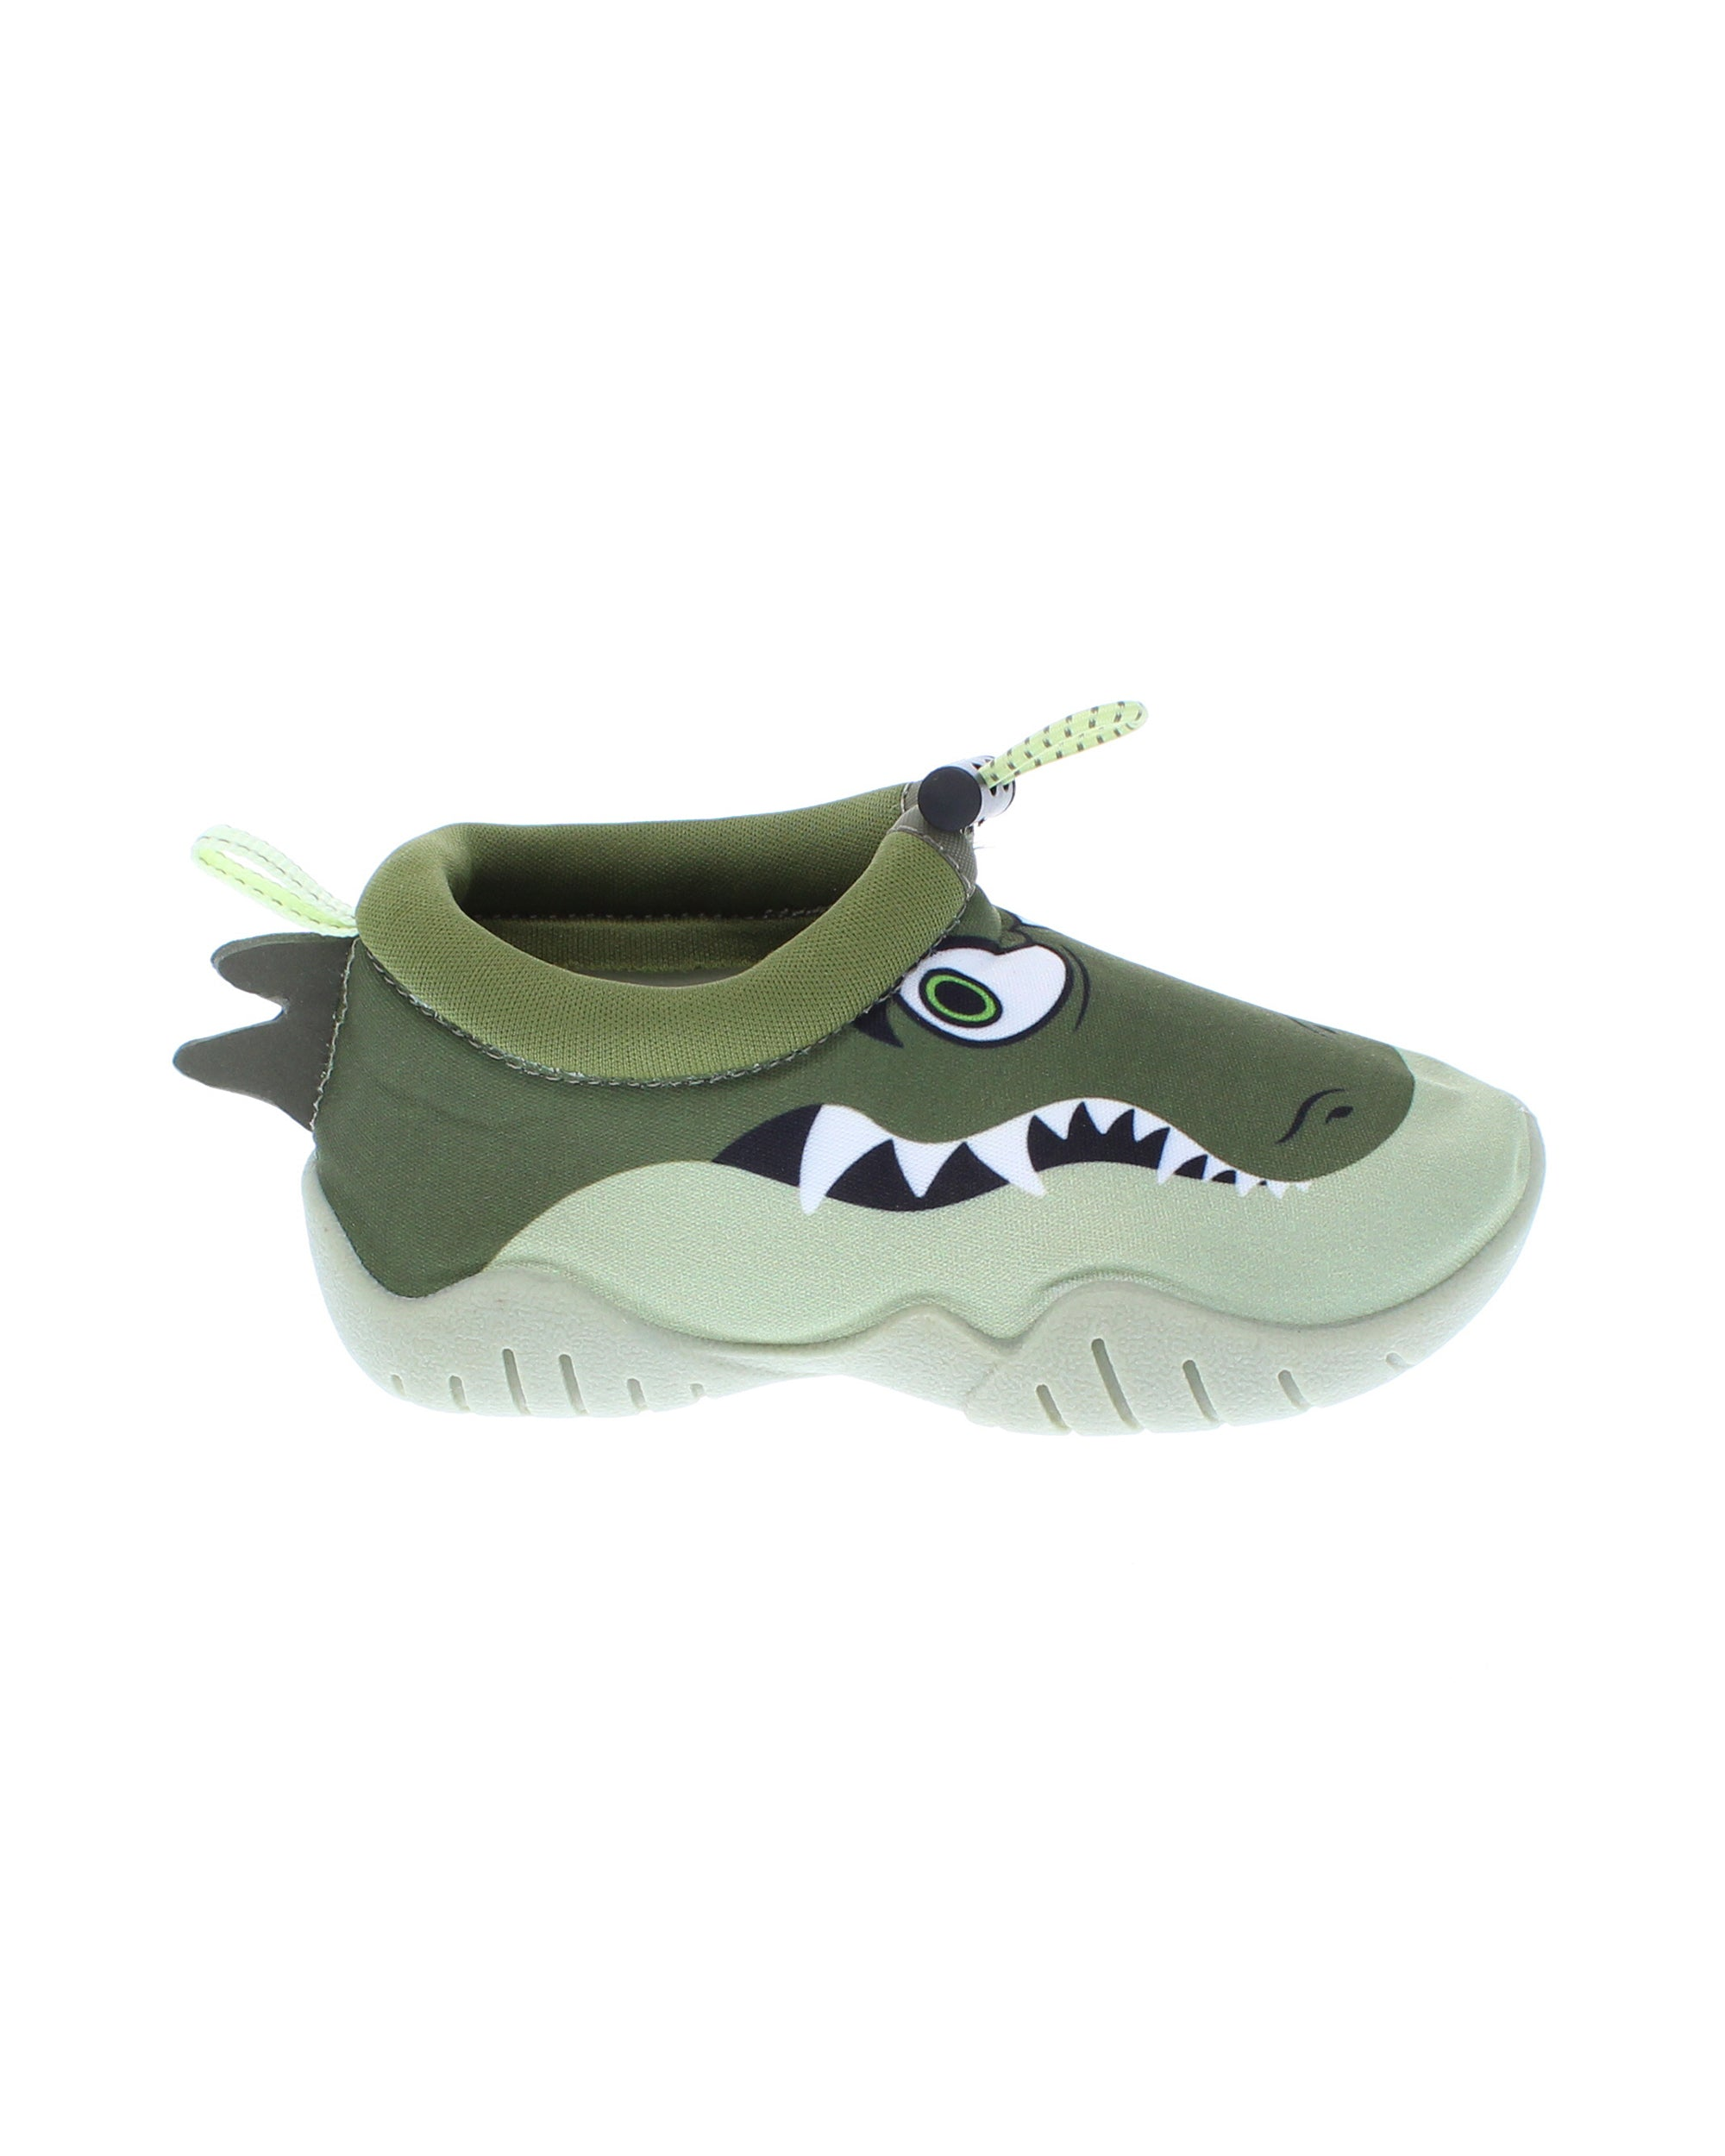 Kids' Sea Pals Water Shoes - Gator Green